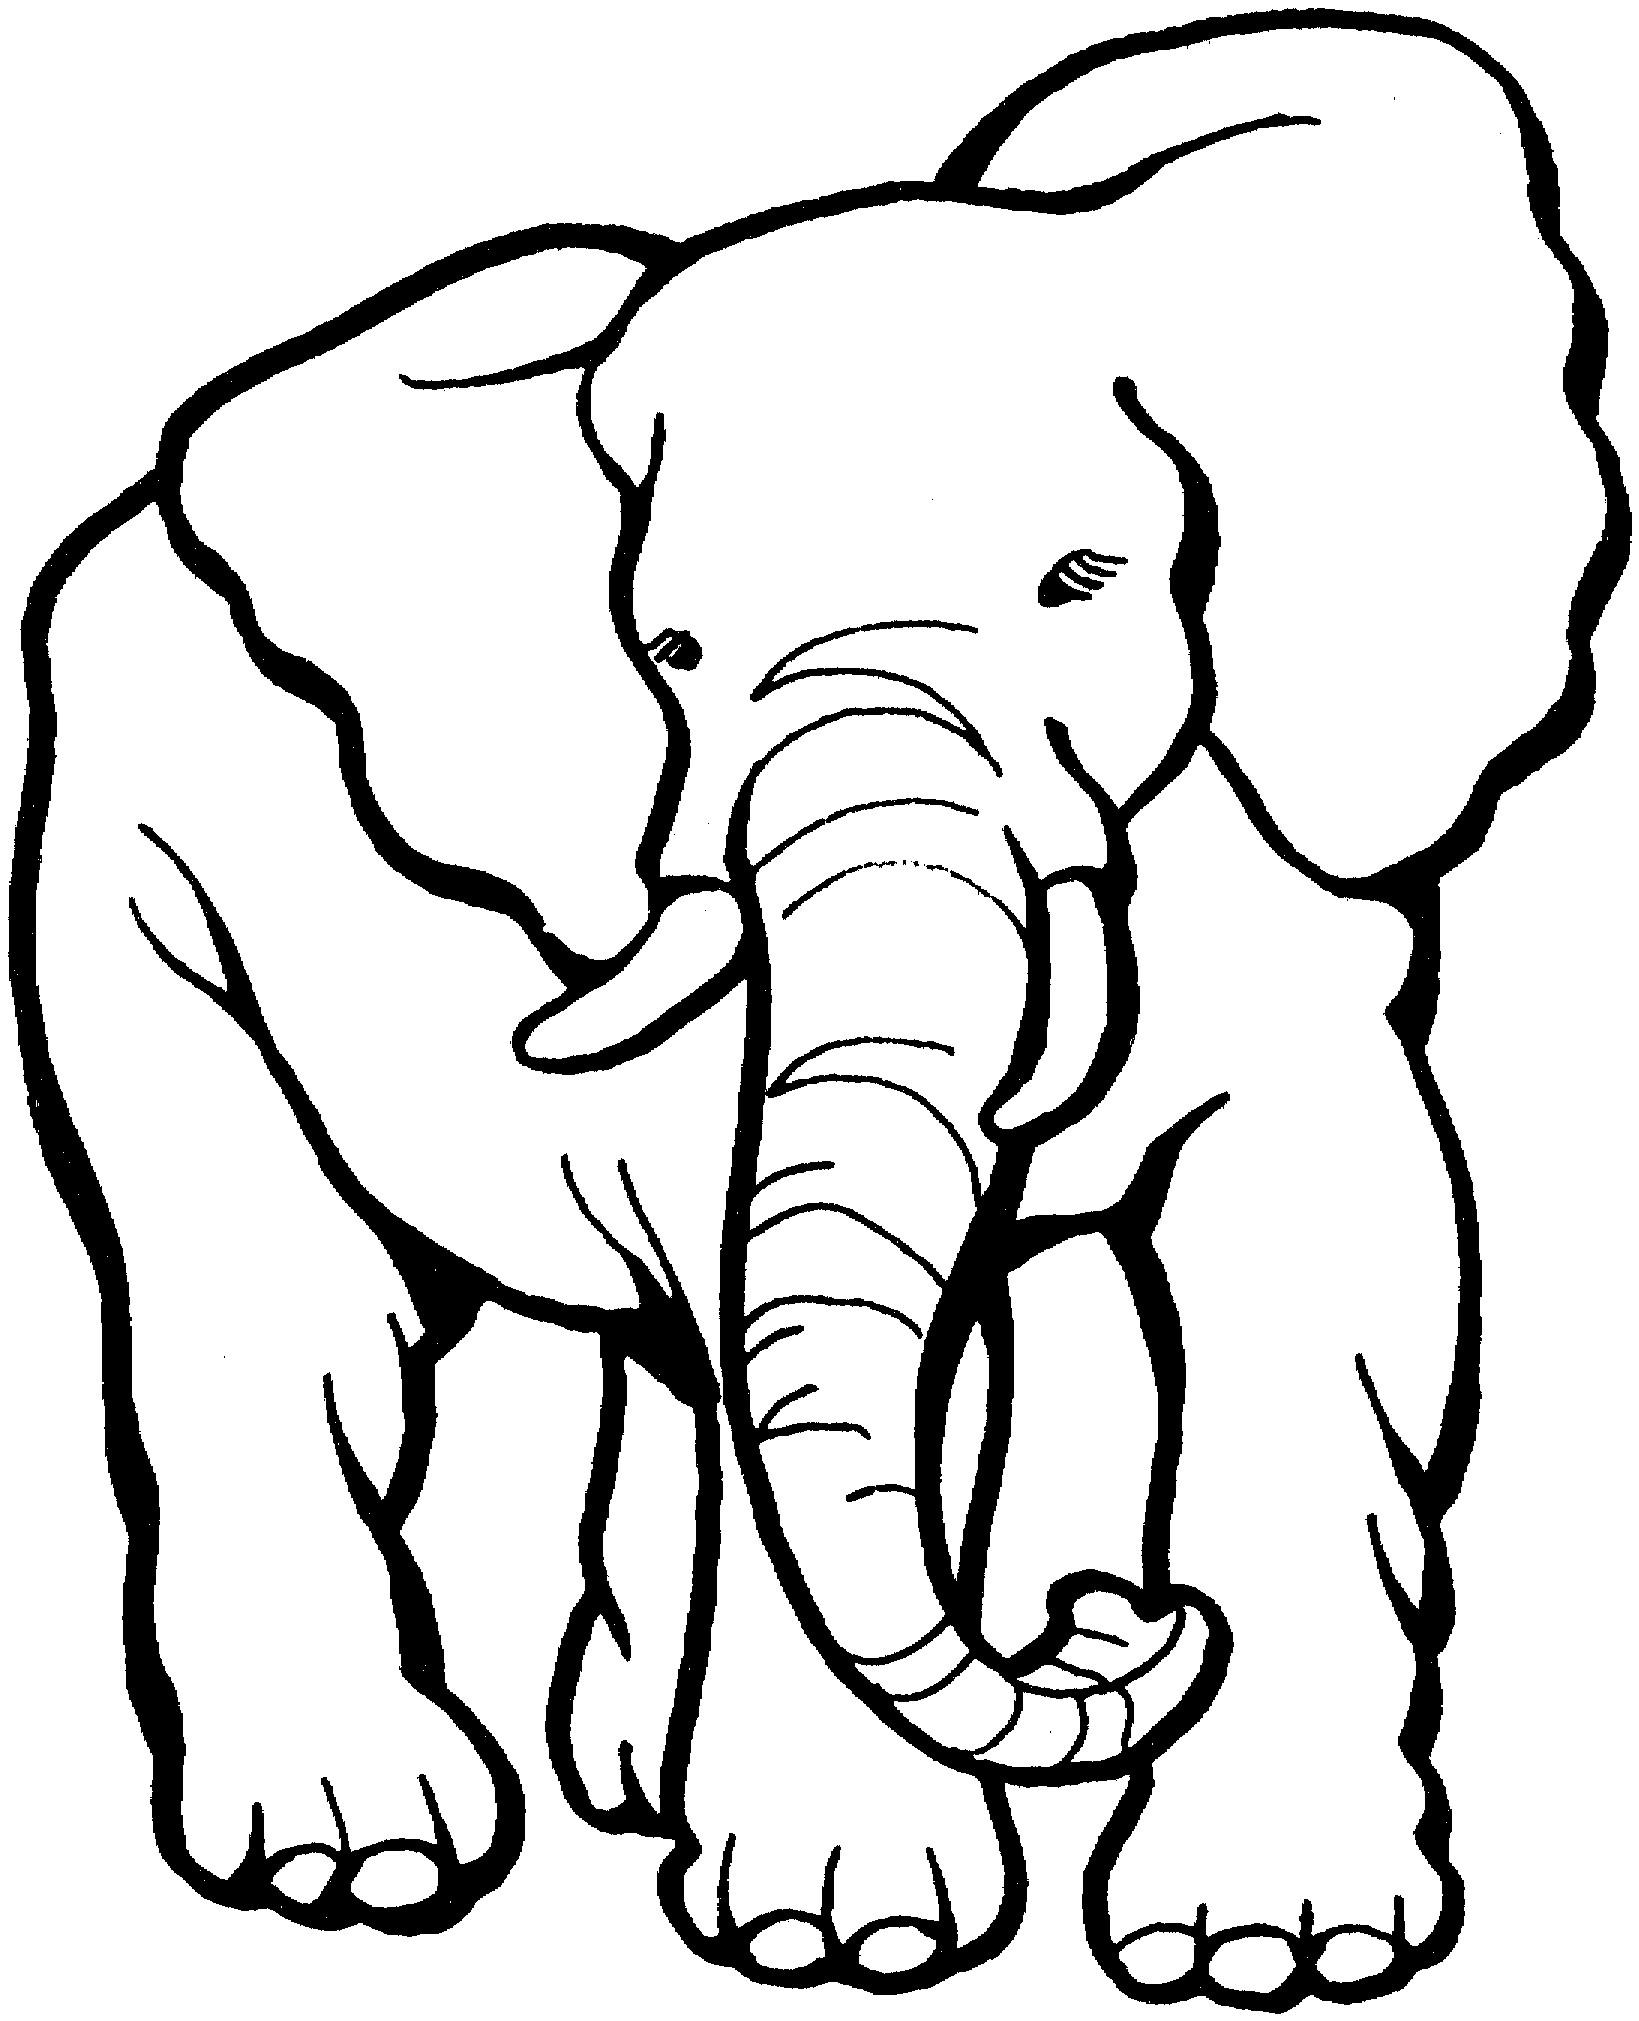 1639x2021 Free Printable Elephant Coloring Pages For Adults New